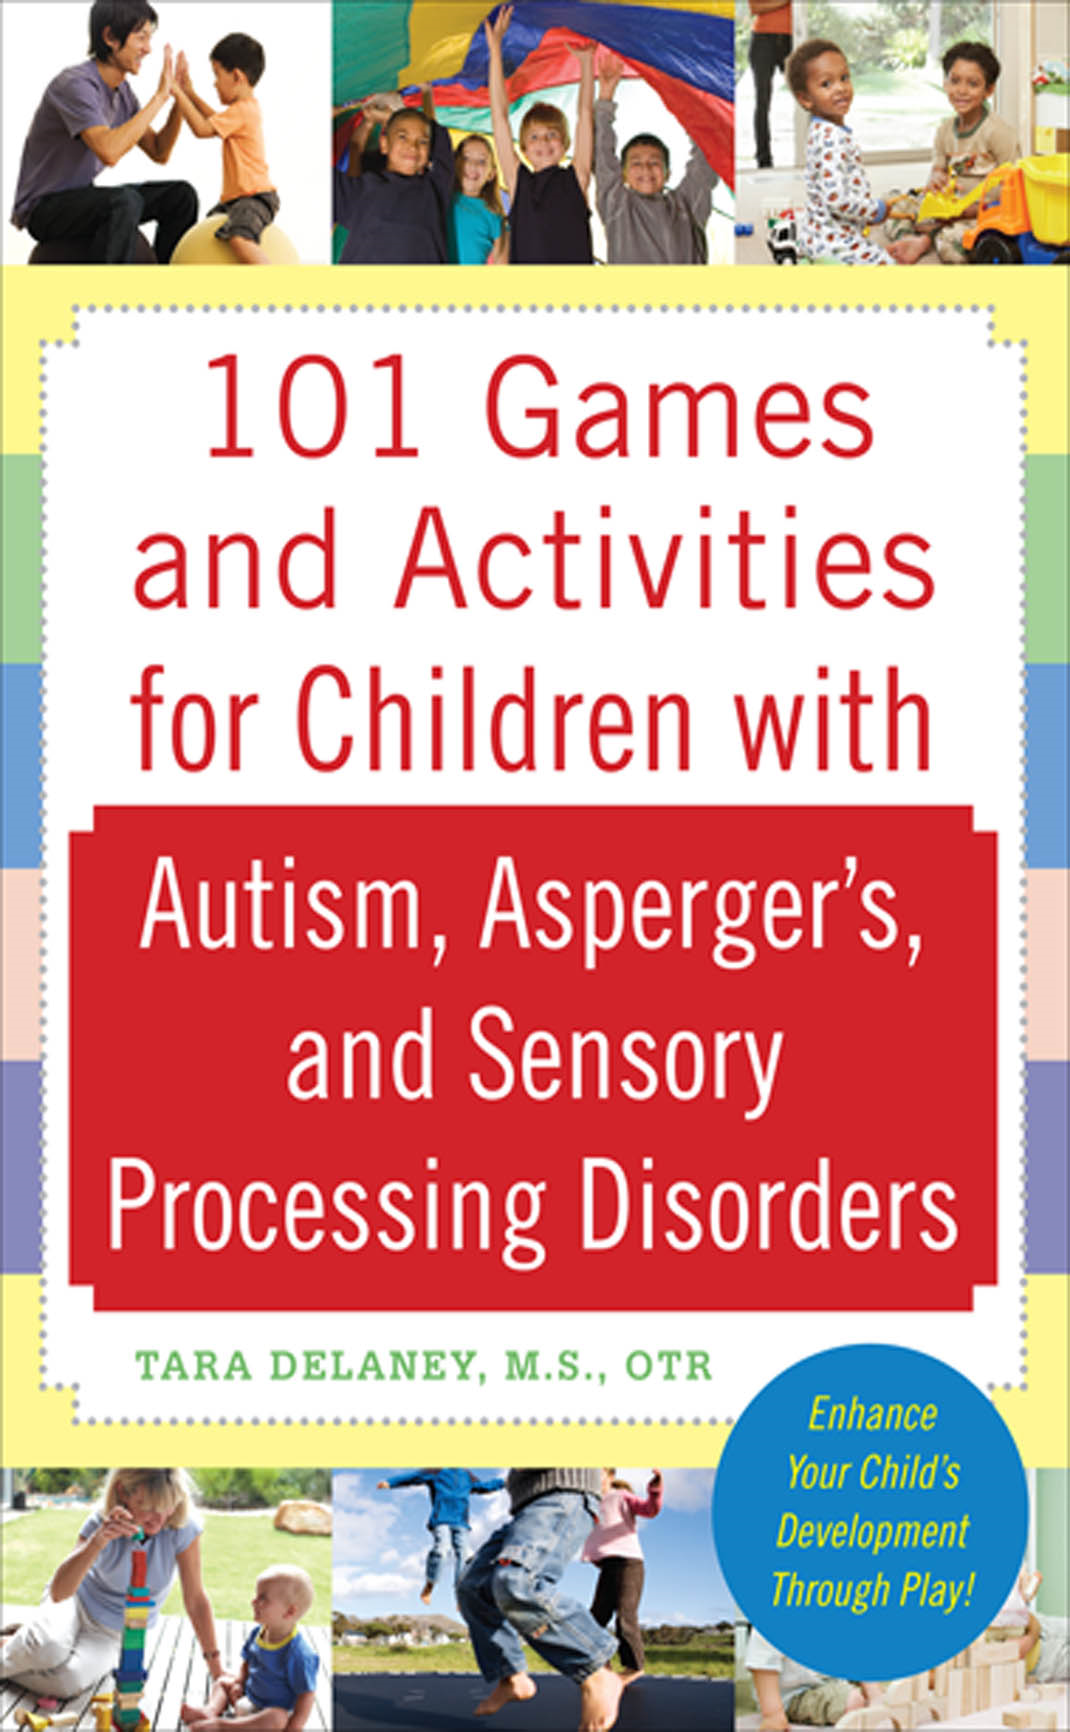 101 Games and Activities for Children With Autism, Asperger's and Sensory Processing Disorders By: Tara Delaney